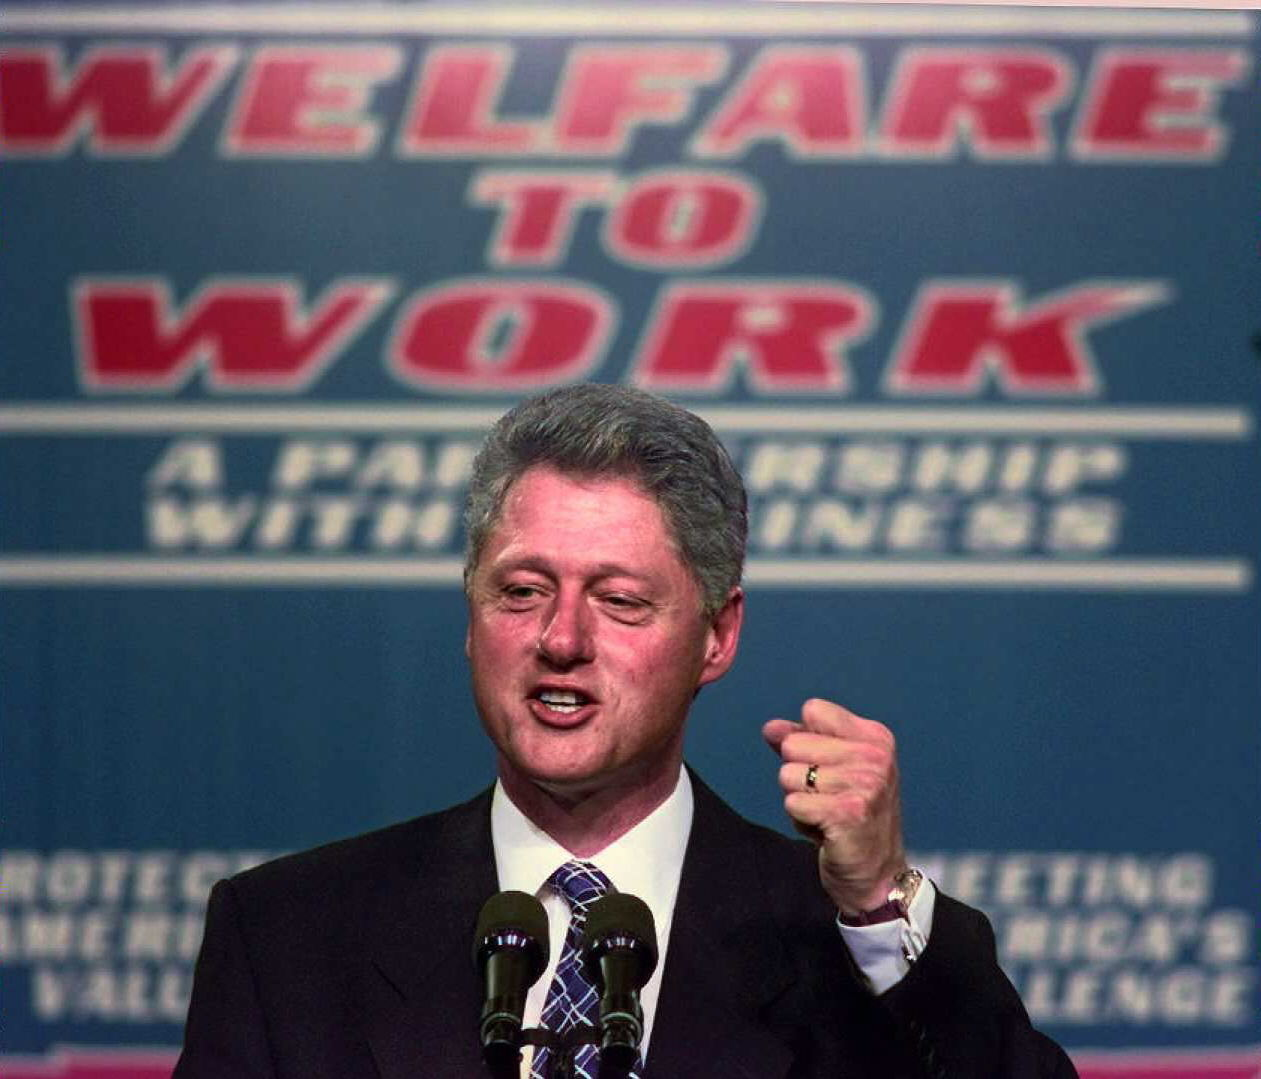 Bill Clinton Welfare Reform